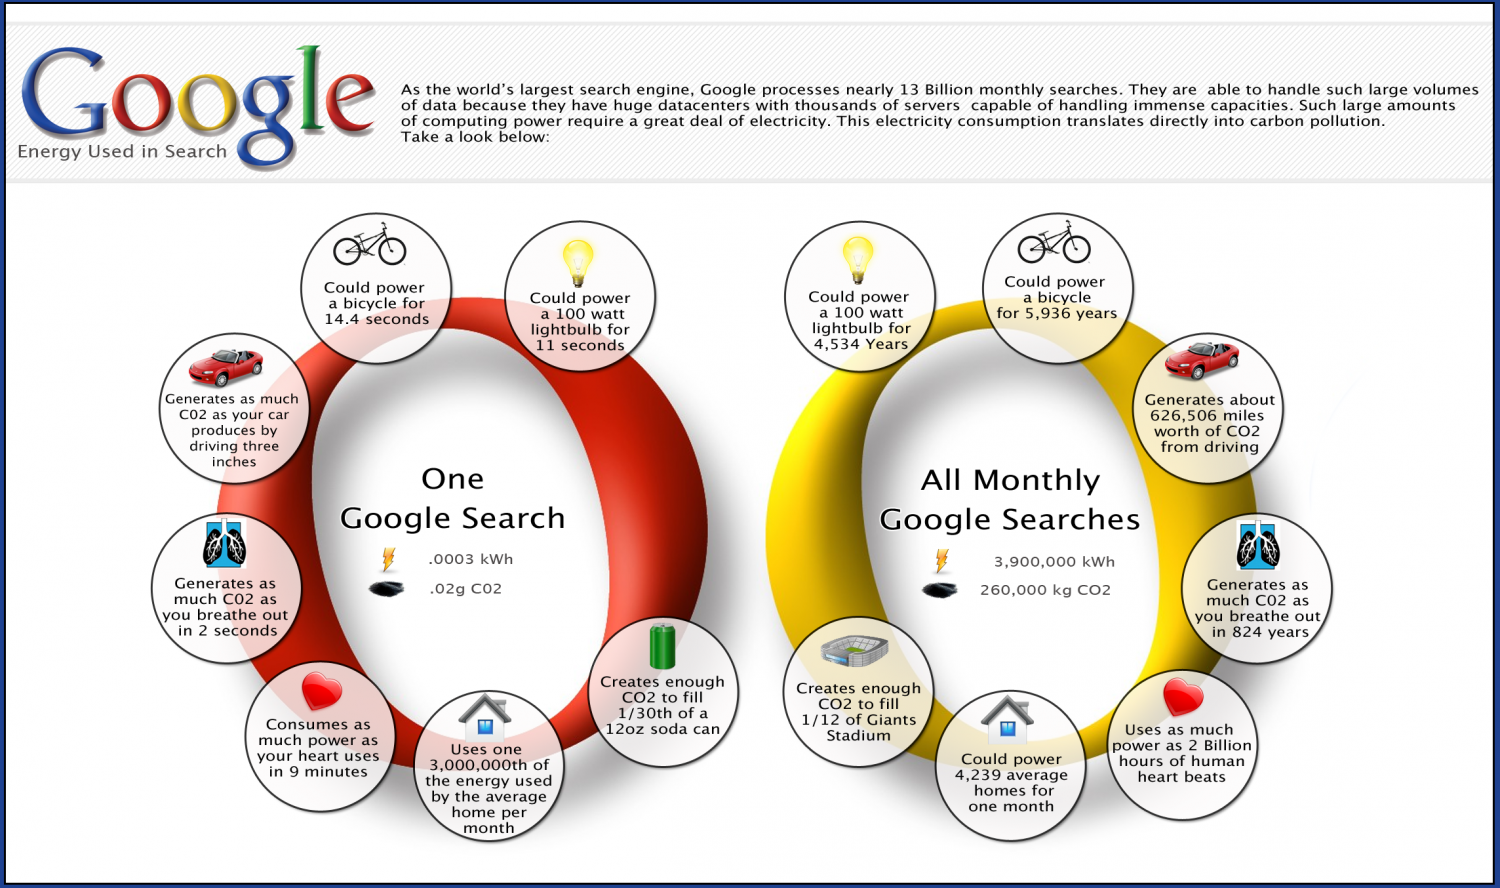 Does Google Search Look so Simple and Lite? Infographic